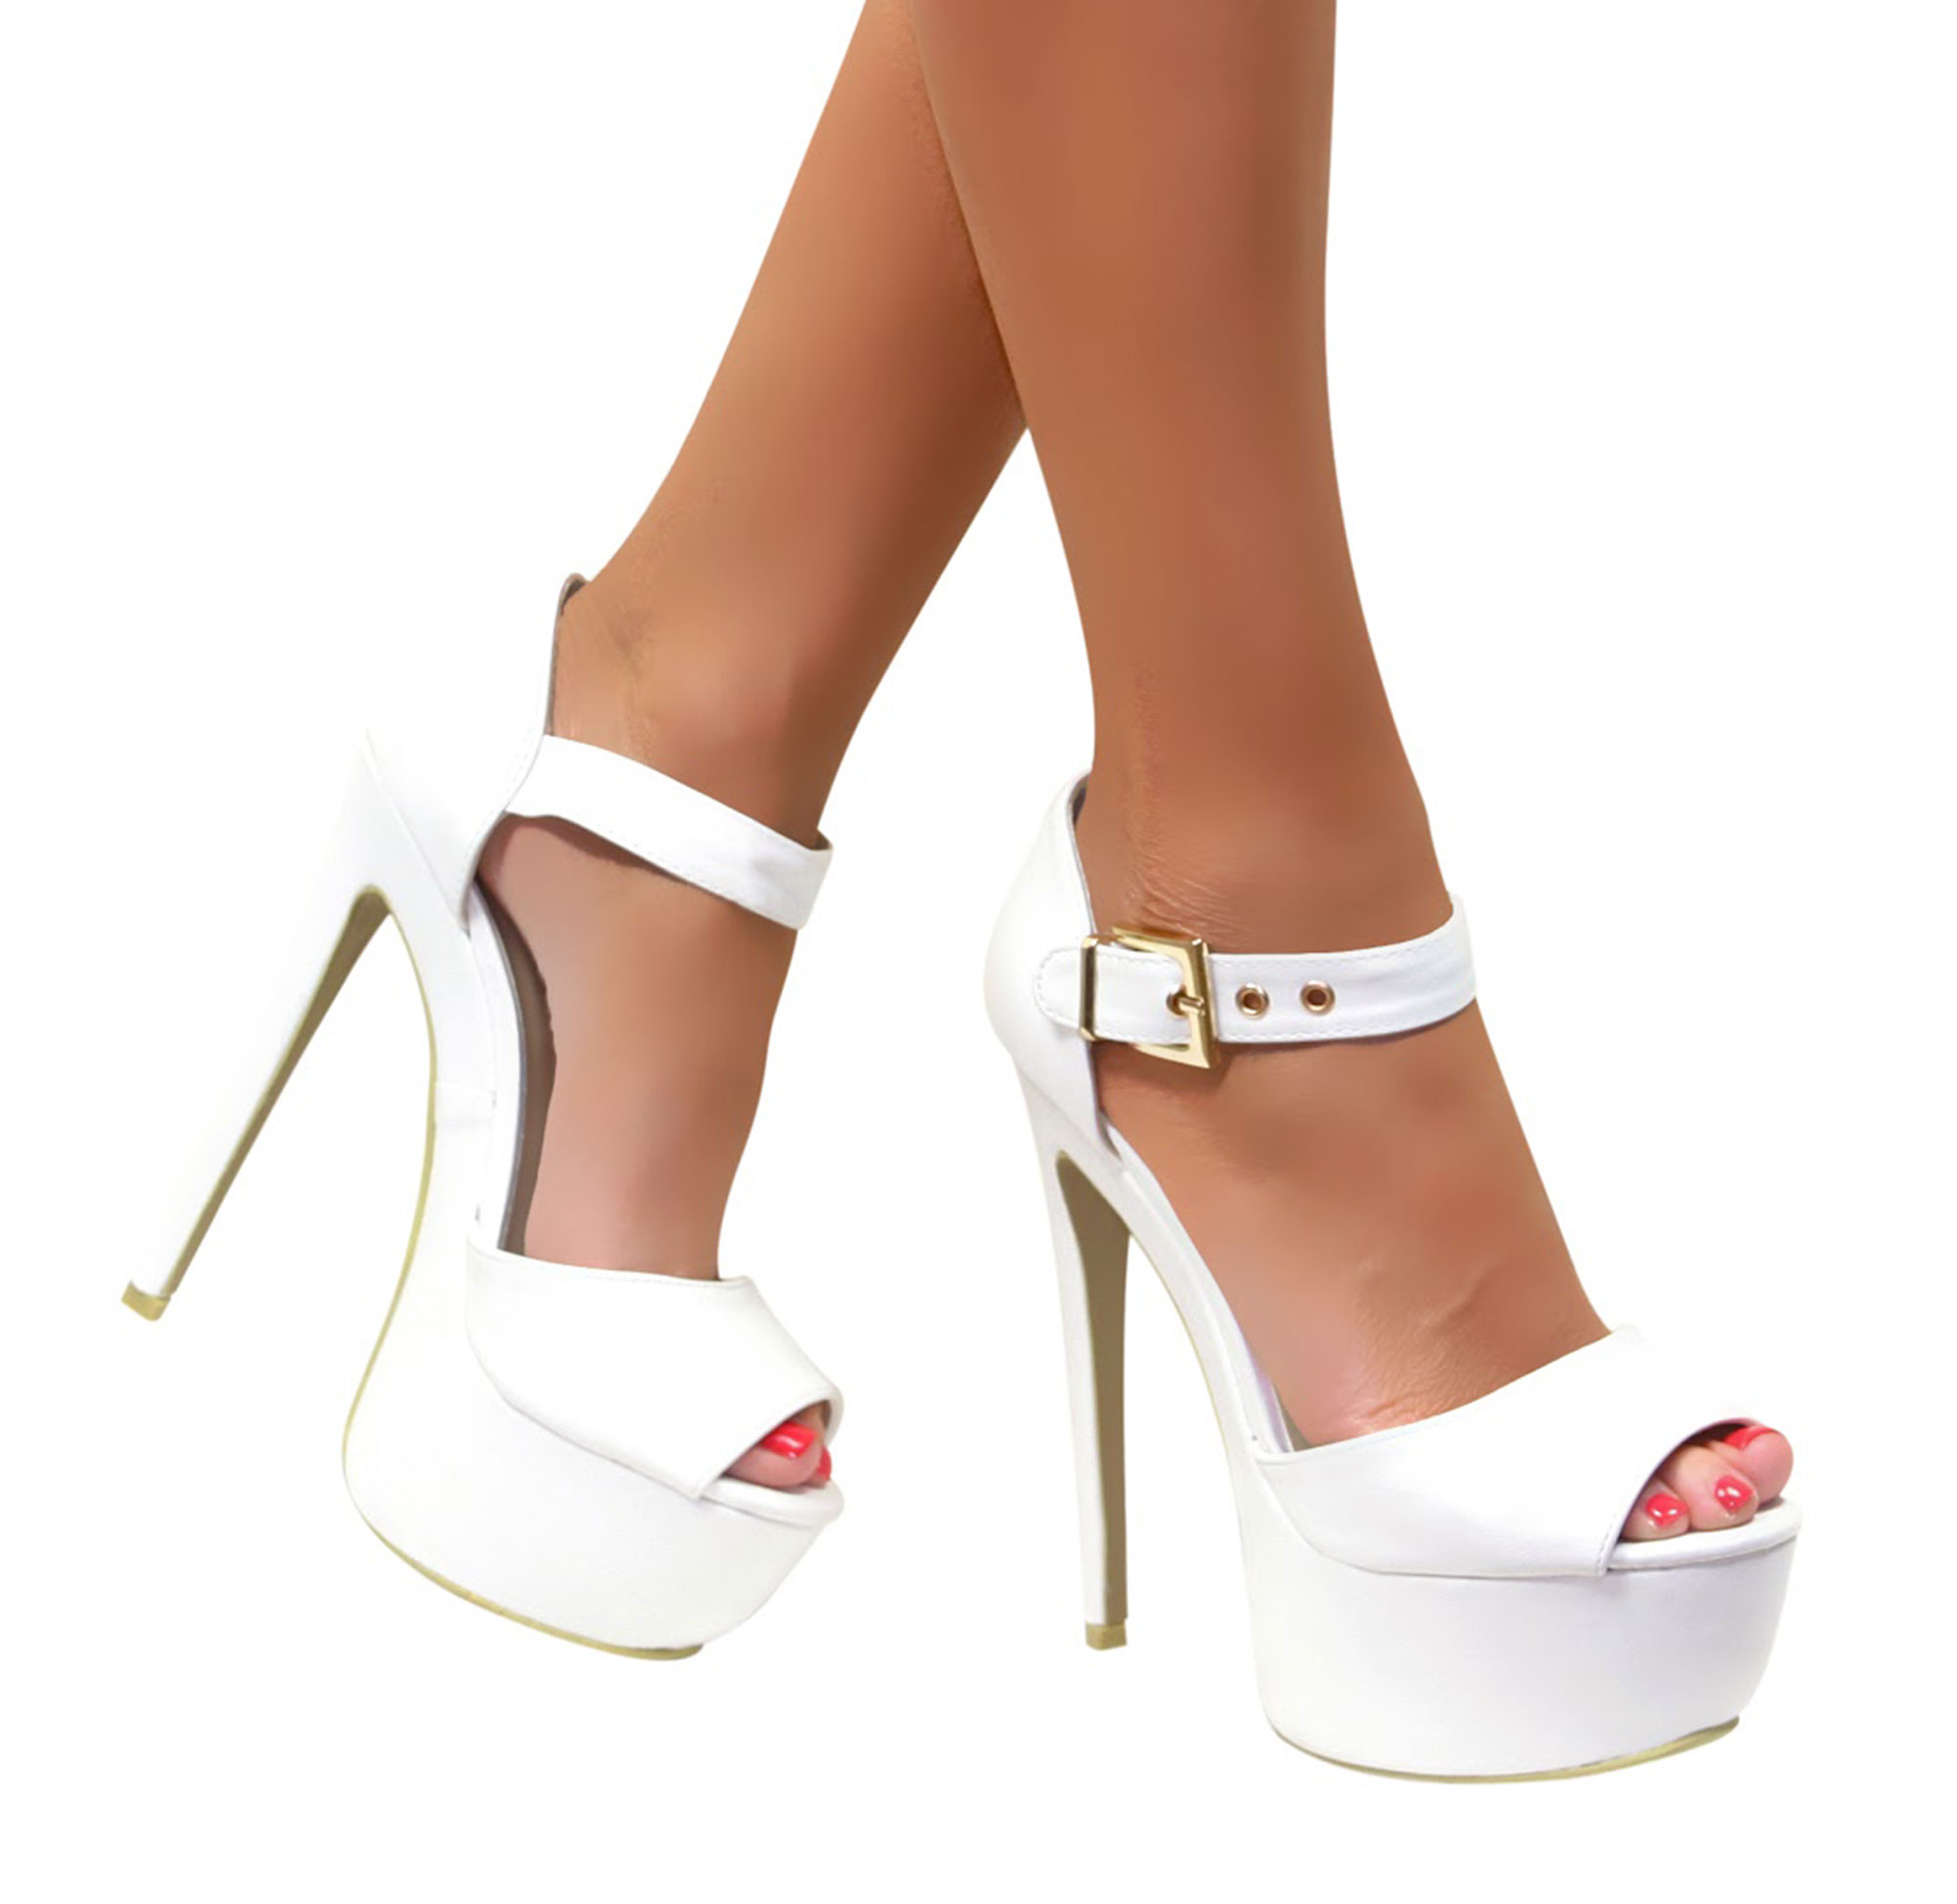 womens ladies platform stiletto strappy party high heel peep toe shoes size ebay. Black Bedroom Furniture Sets. Home Design Ideas